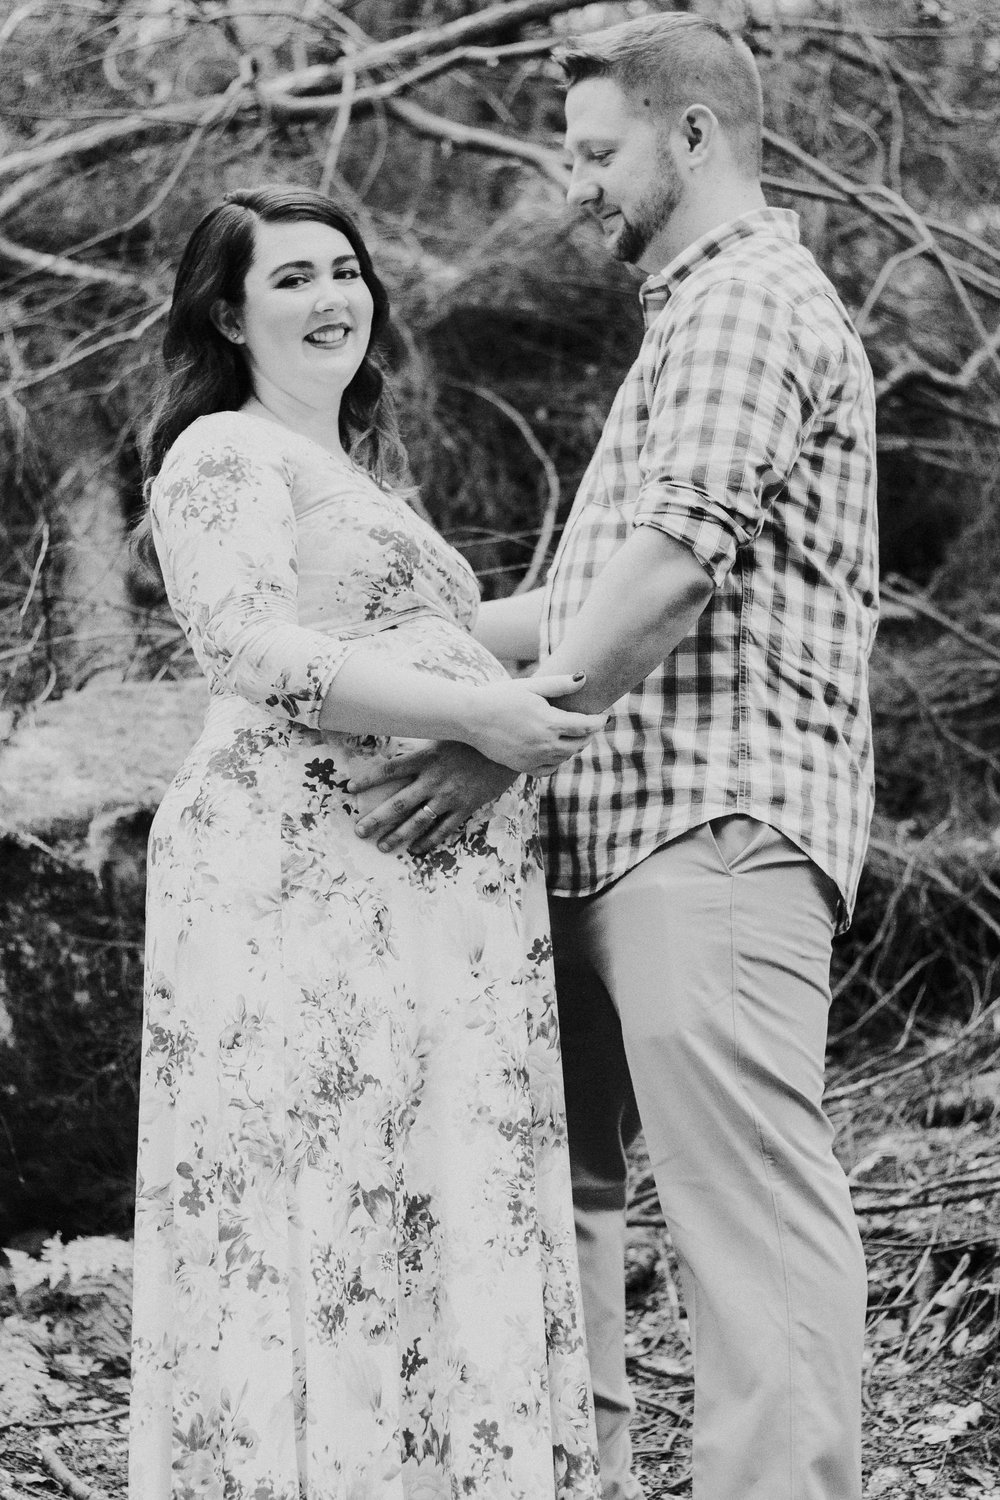 Black and white photo of couple, Artistic + Woodsy Maternity Session | Sarah P Thomas Photography